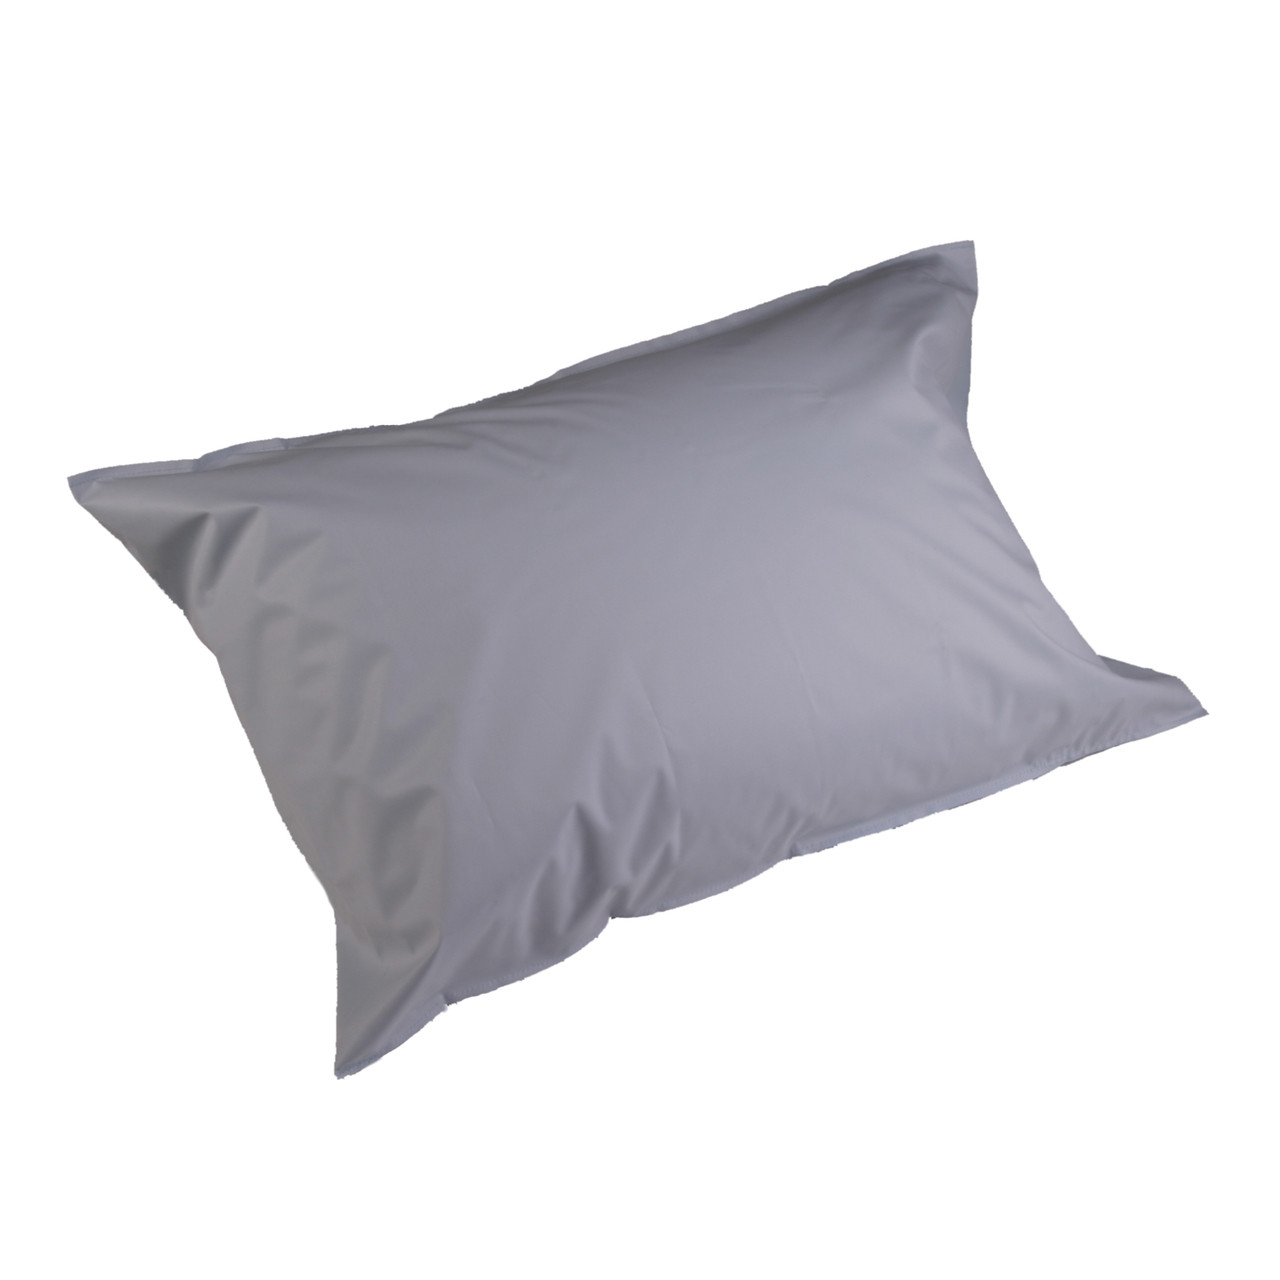 Jaycare Water Proof Pillow Cover